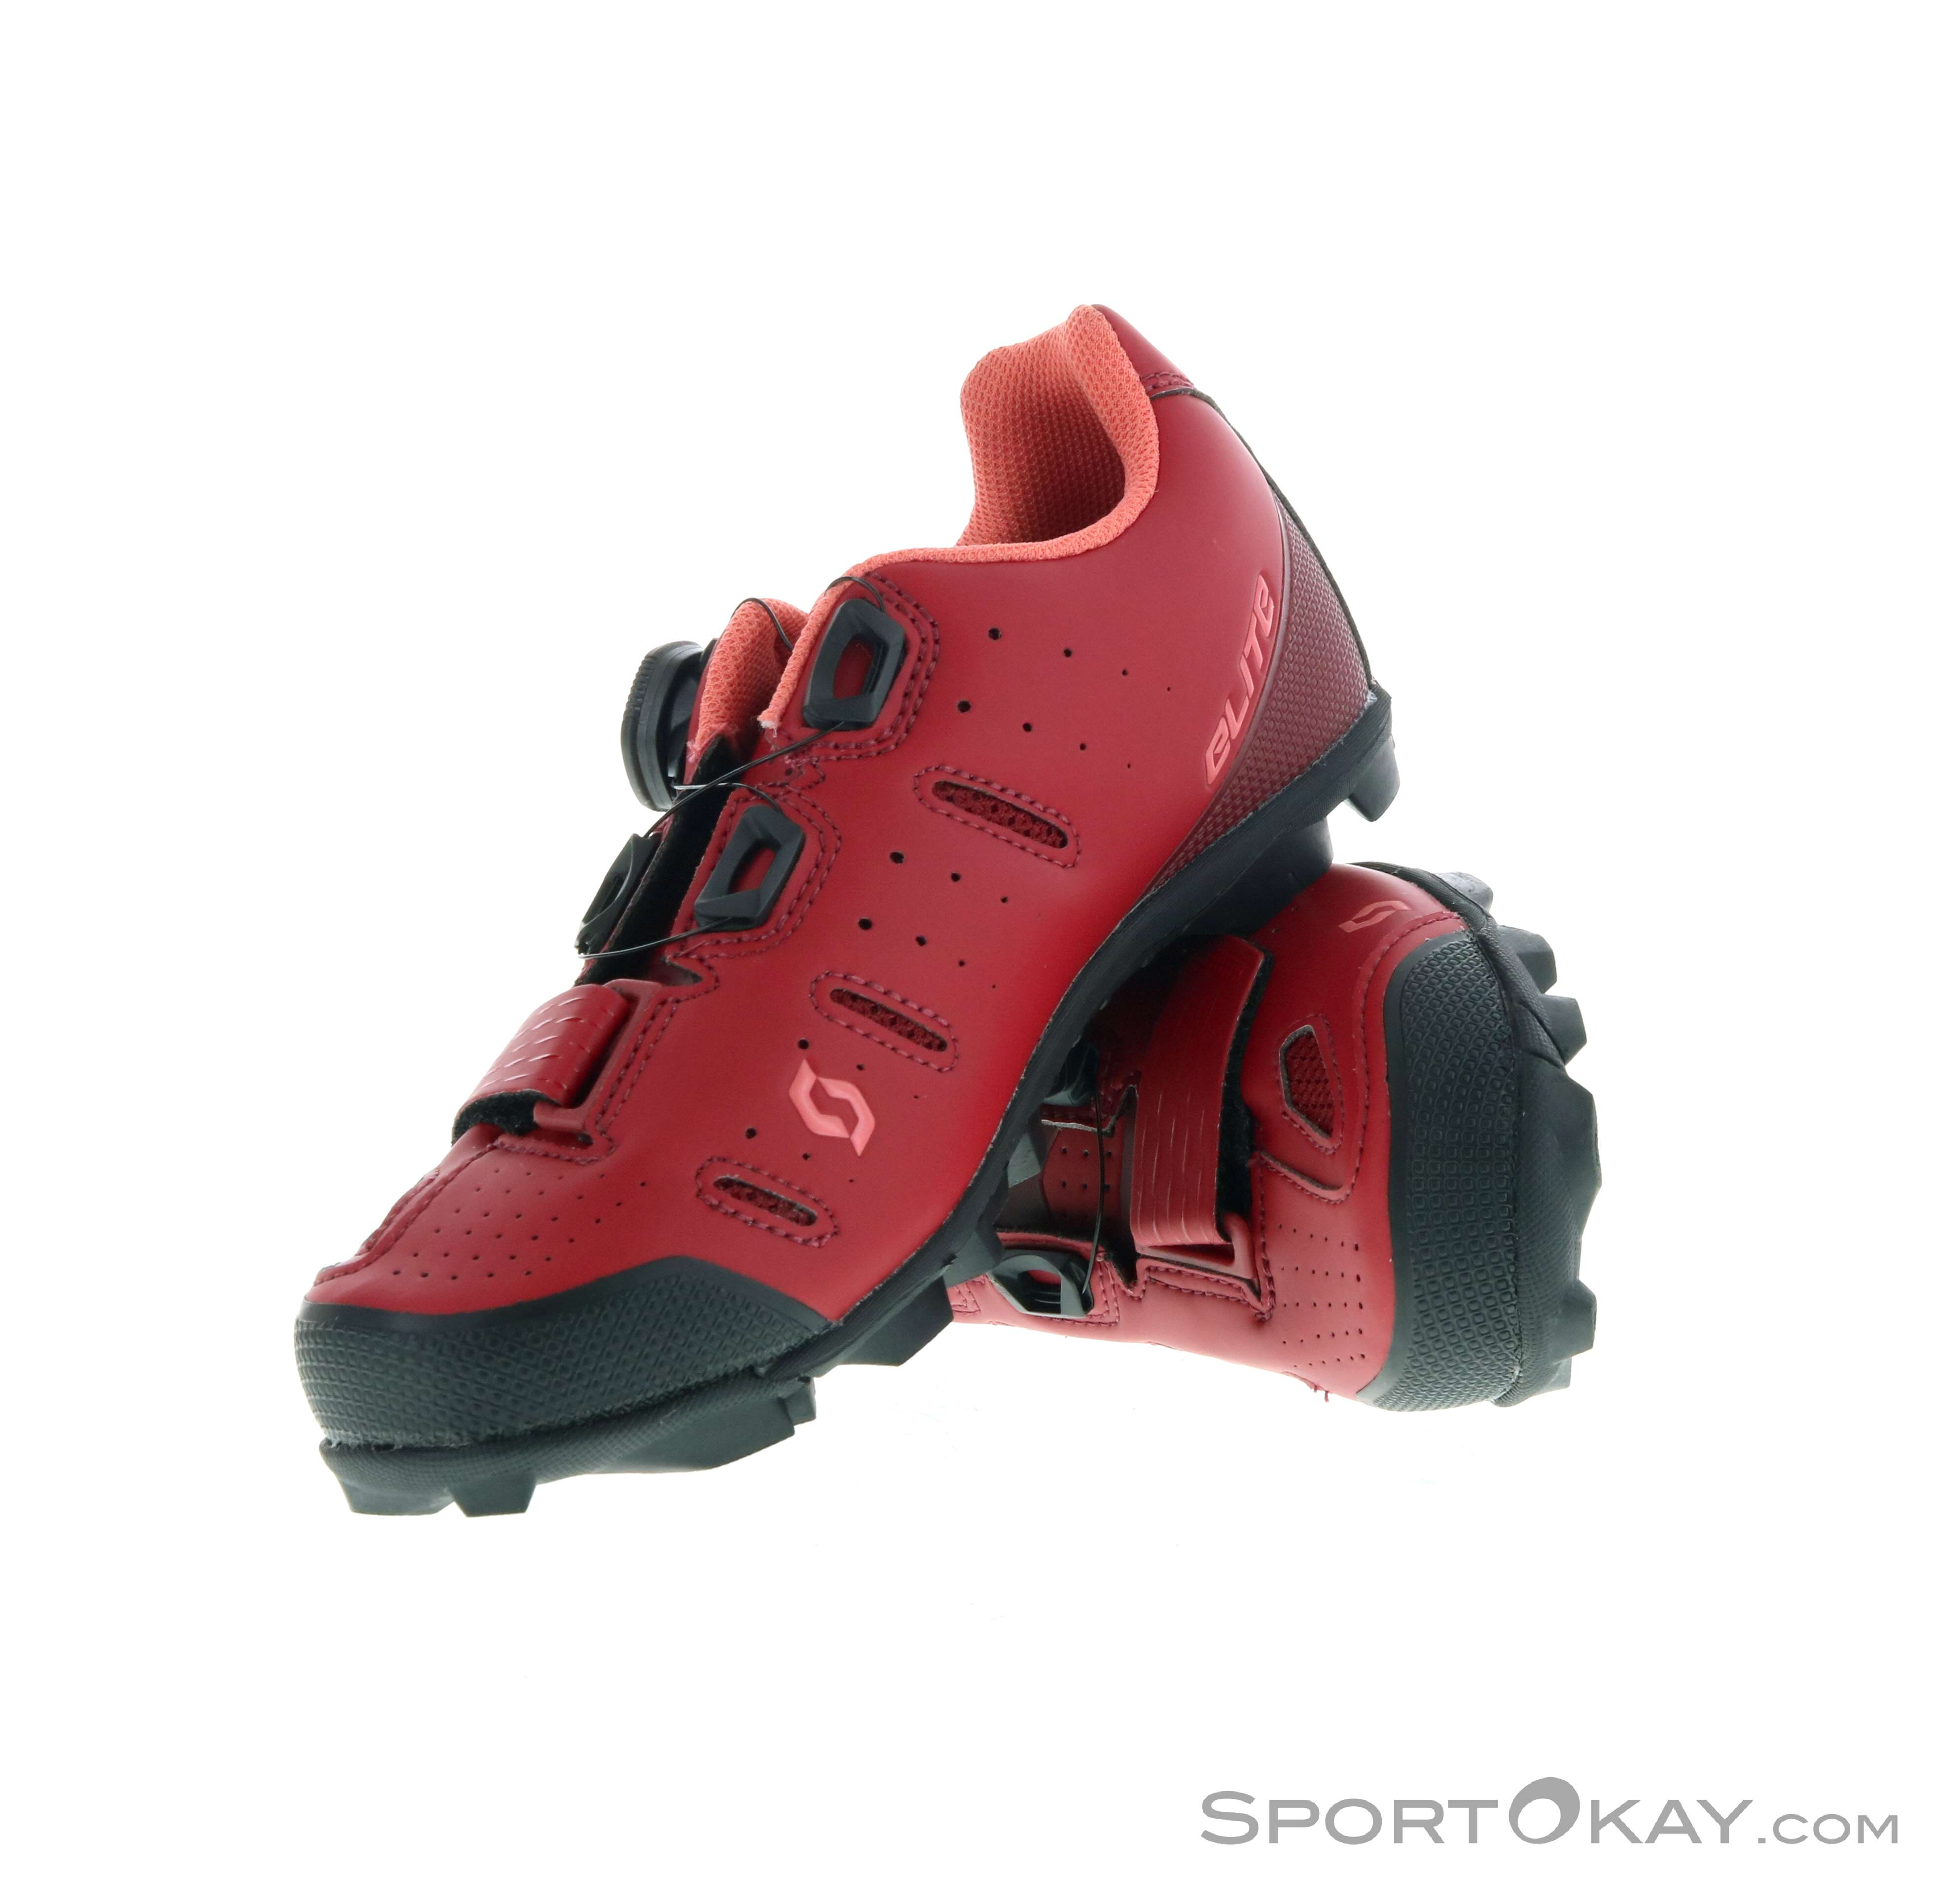 Scott MTB Elite Boa Lady Womens Biking Shoes Mountain Bike